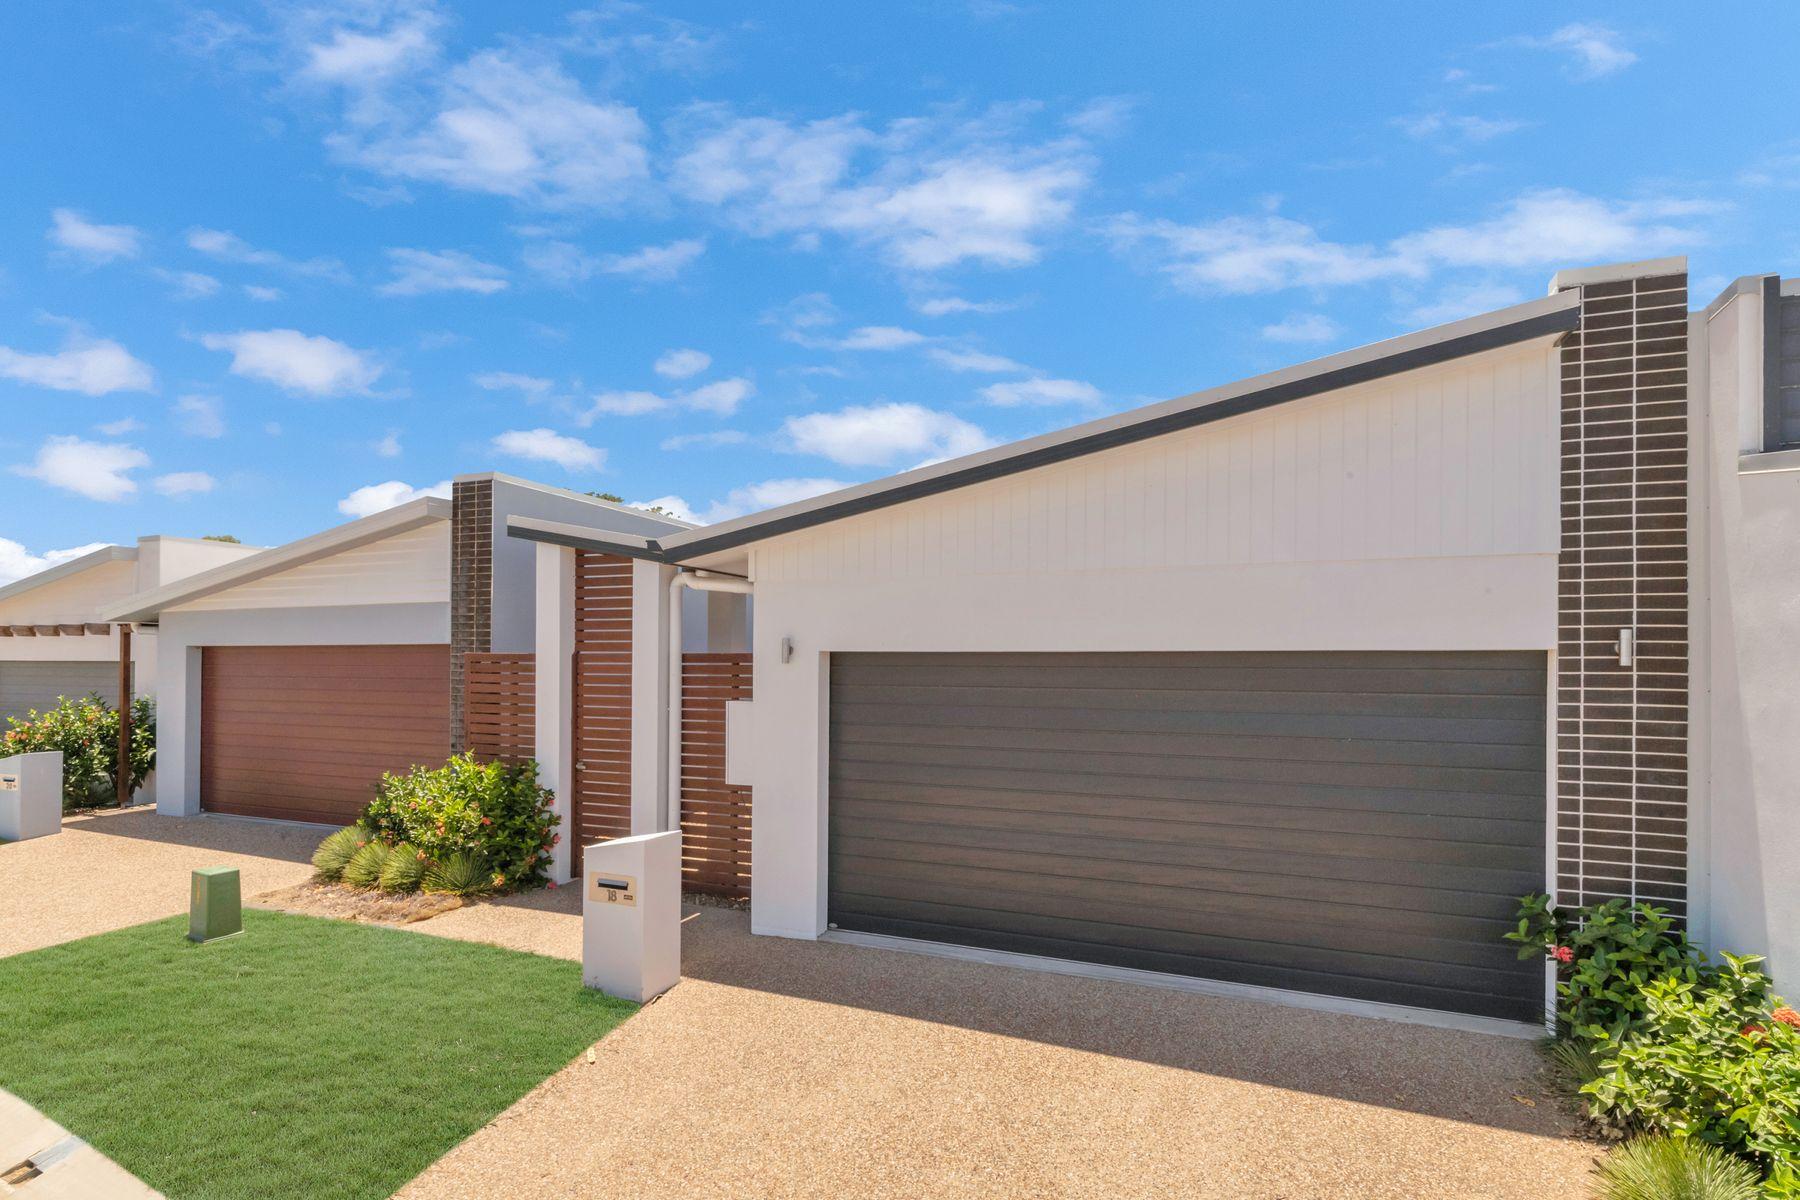 18 Castleview Lane, Garbutt, QLD 4814